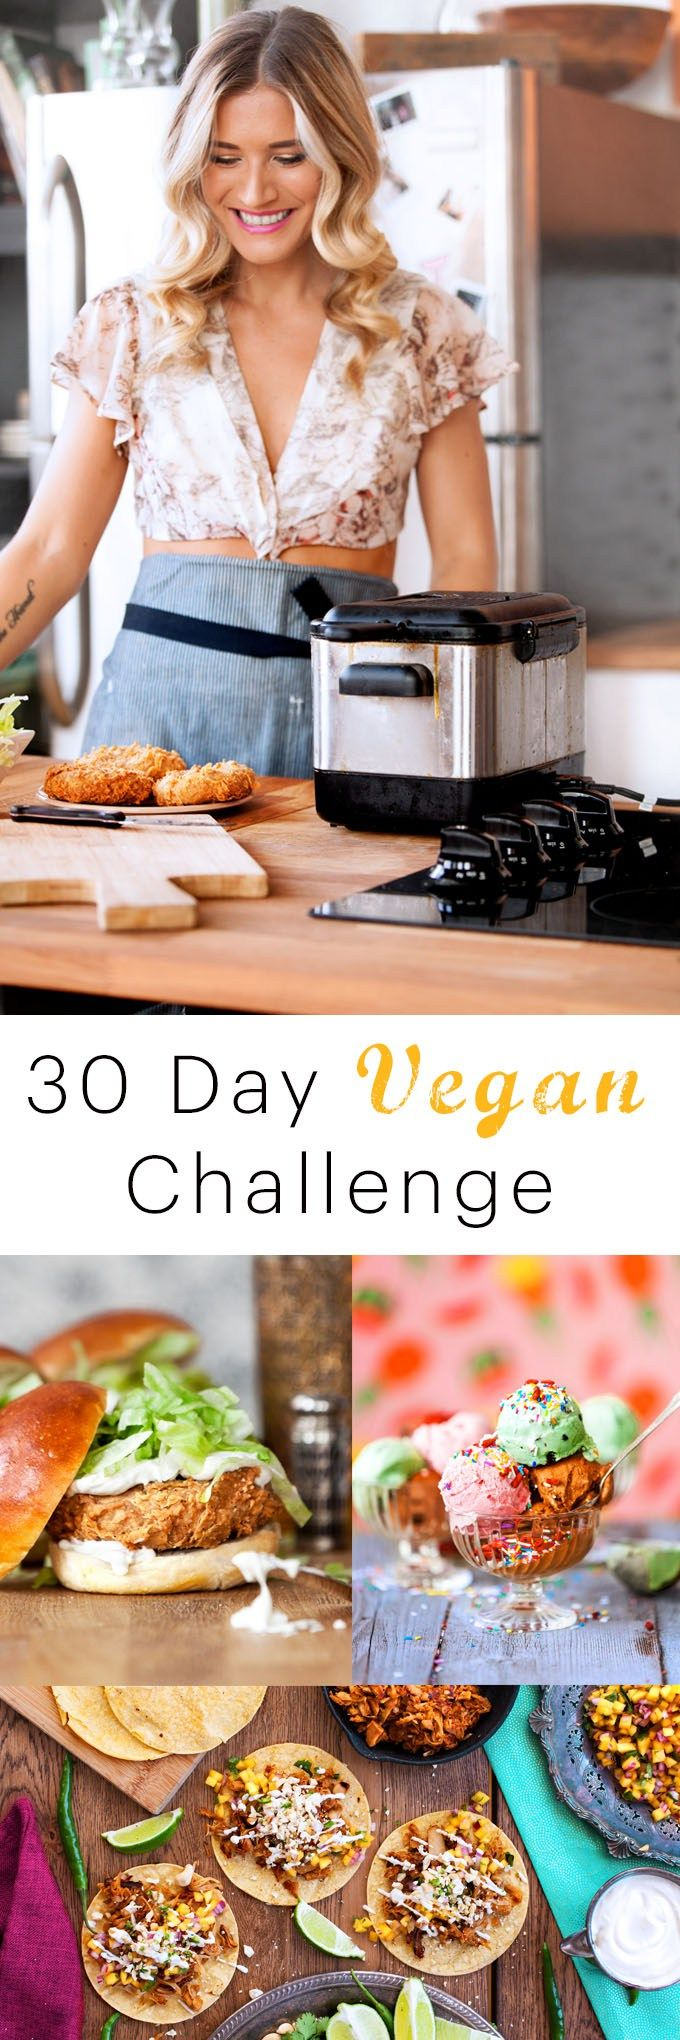 If you aren't a vegan, or even a vegetarian, it's important to give your body a break from meat and dairy every so often. The 30 day vegan challenge is a great way to find new ways to incorporate more vegetables and vegan protein into your diet, and will get you back into the kitchen, really thinking about what you are putting into your body.  30 days vegan chall